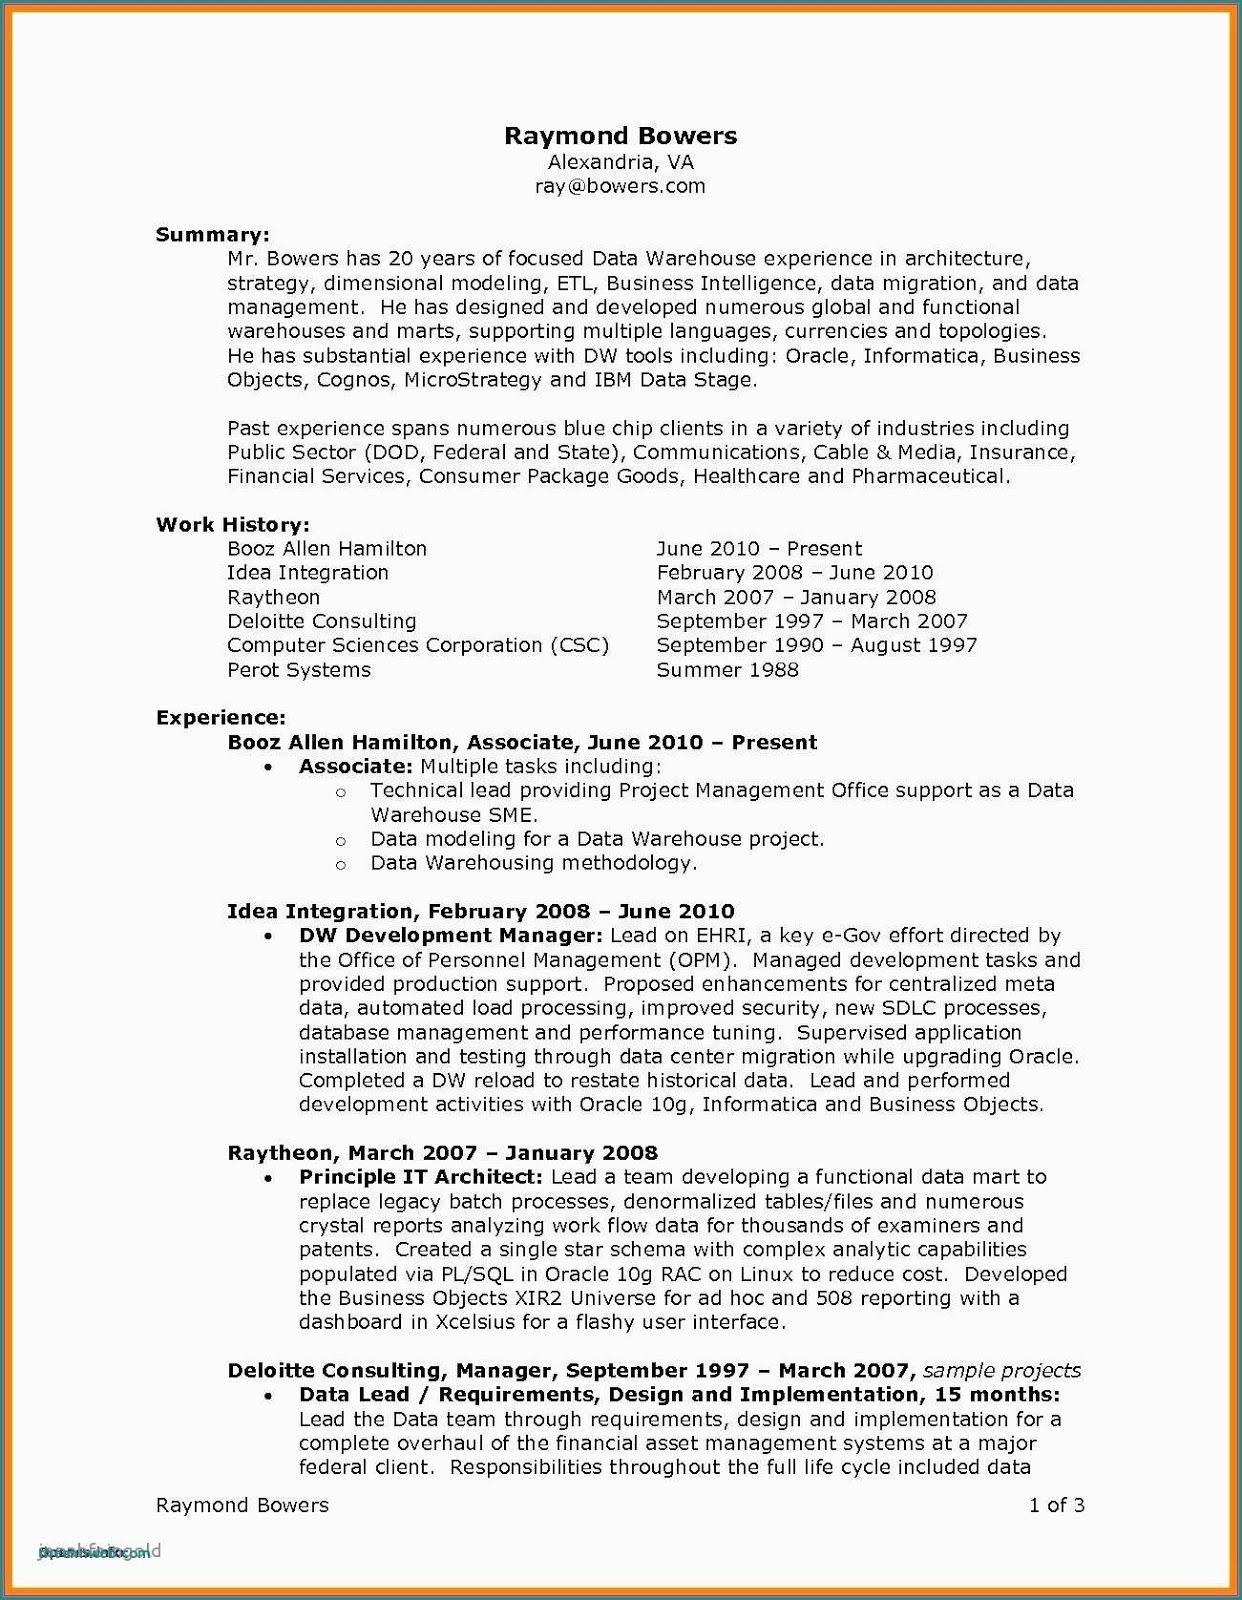 Academic resume sample 2019 Academic Cv Samples 2020 Beste